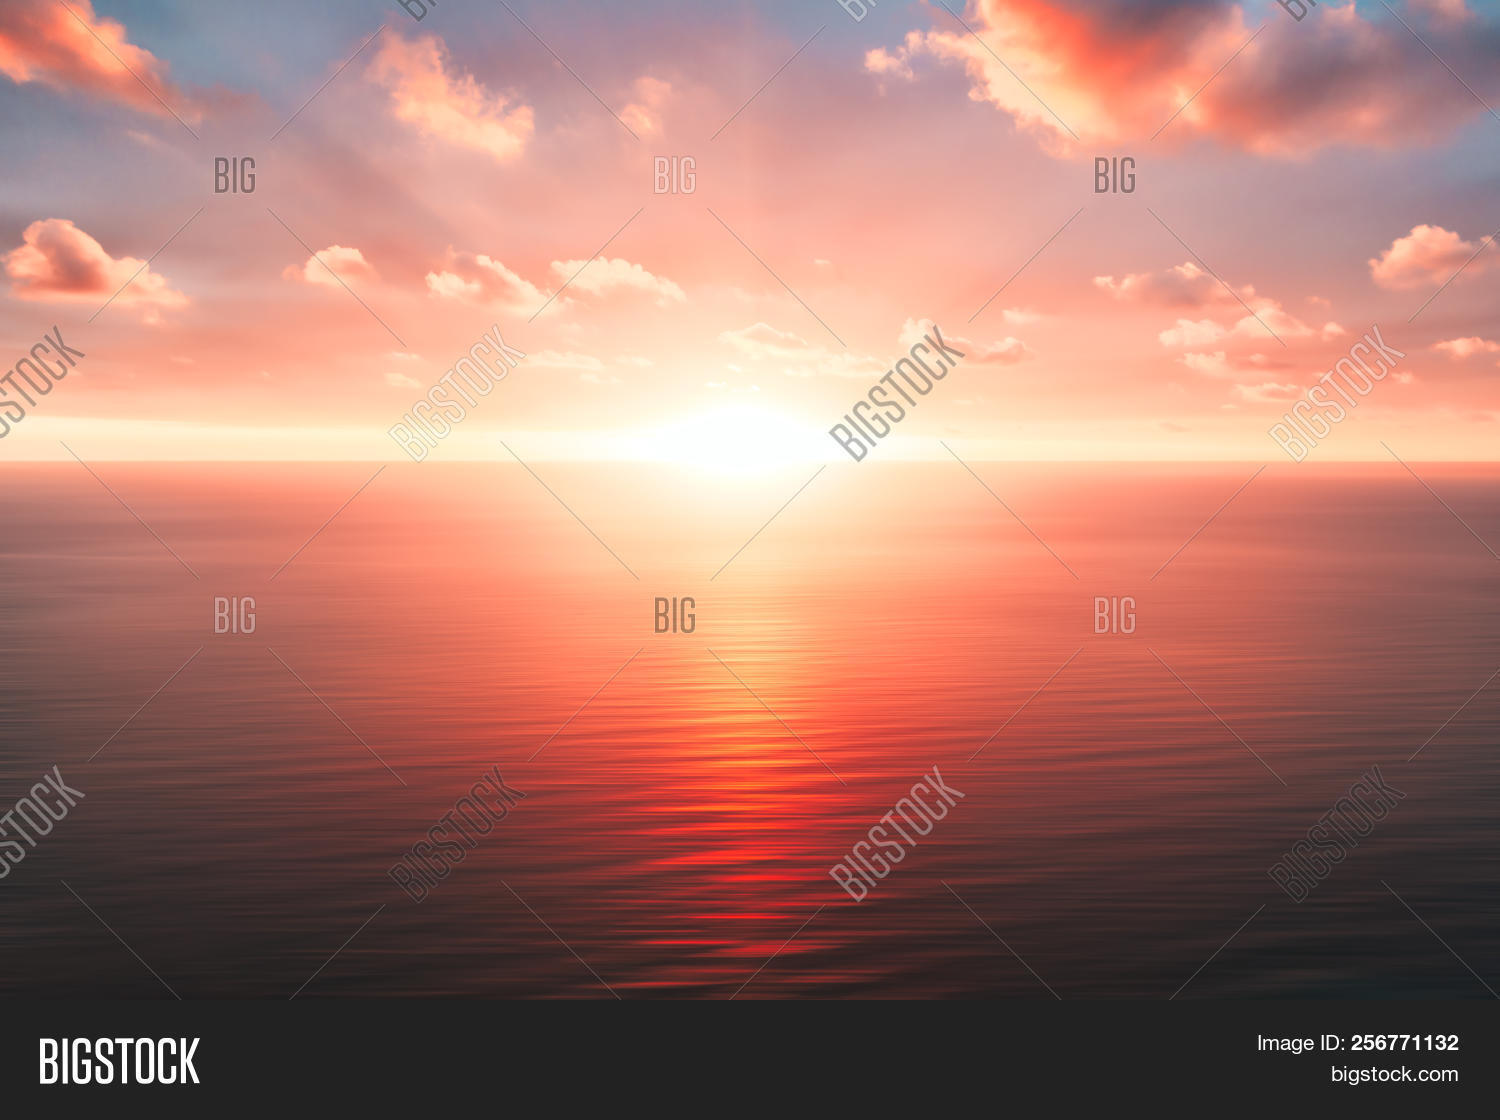 abstract,backdrop,background,bay,beach,beautiful,beauty,blue,clouds,cloudscape,coast,color,colorful,dawn,day,dusk,evening,gold,heaven,horizon,landscape,light,morning,nature,ocean,orange,panorama,peaceful,reflection,scene,scenic,sea,seascape,season,sky,summer,sun,sunlight,sunny,sunrise,sunset,tranquil,travel,twilight,vacation,view,wallpaper,water,wave,weather